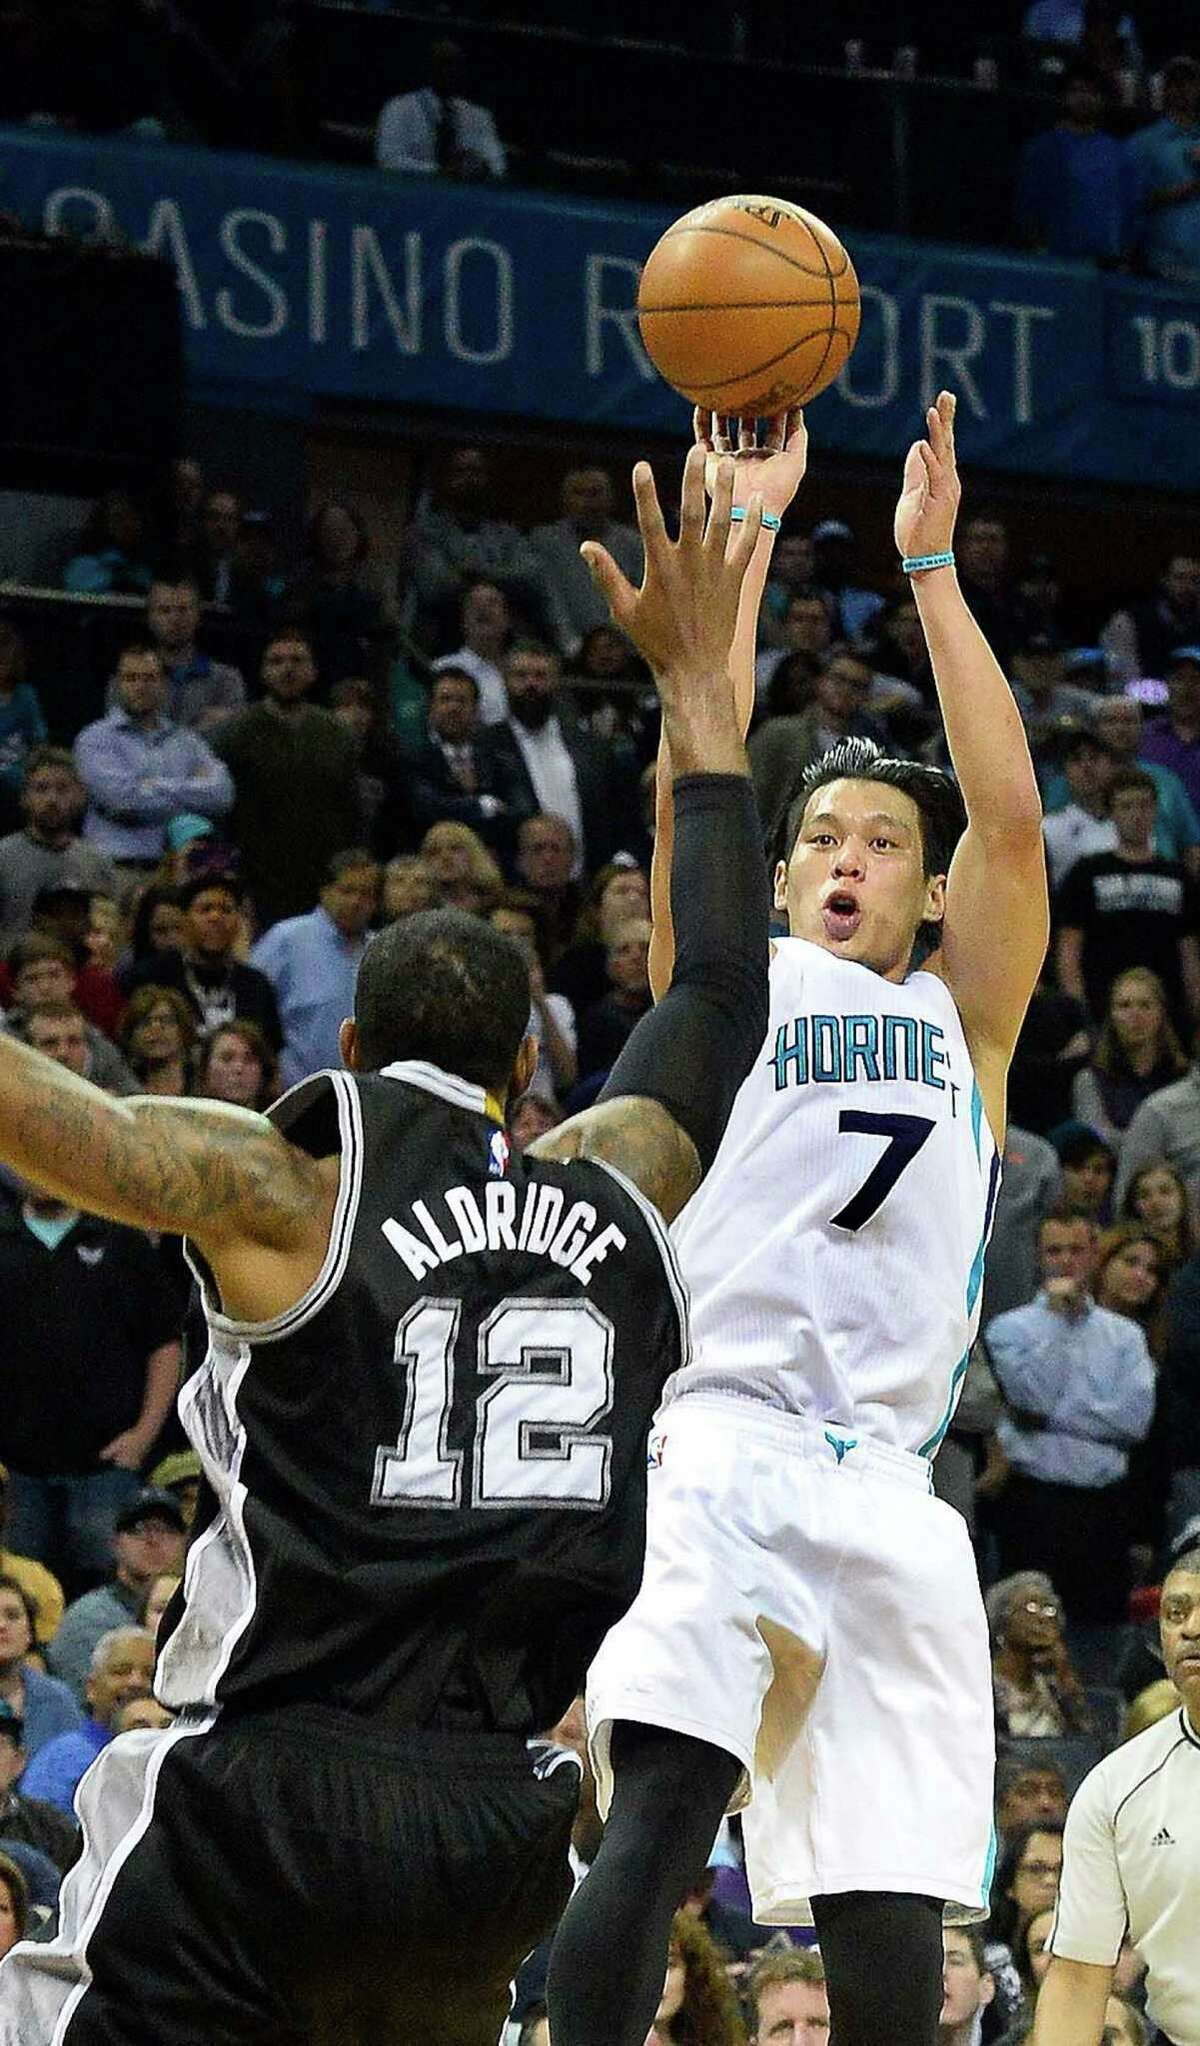 Charlotte Hornets guard Jeremy Lin shoots the ball over San Antonio Spurs forward LaMarcus Aldridge during Monday night's game at Time Warner Cable Arena on March 21, 2016 in Charlotte, N.C. The Charlotte Hornets defeated the San Antonio Spurs 91-88.